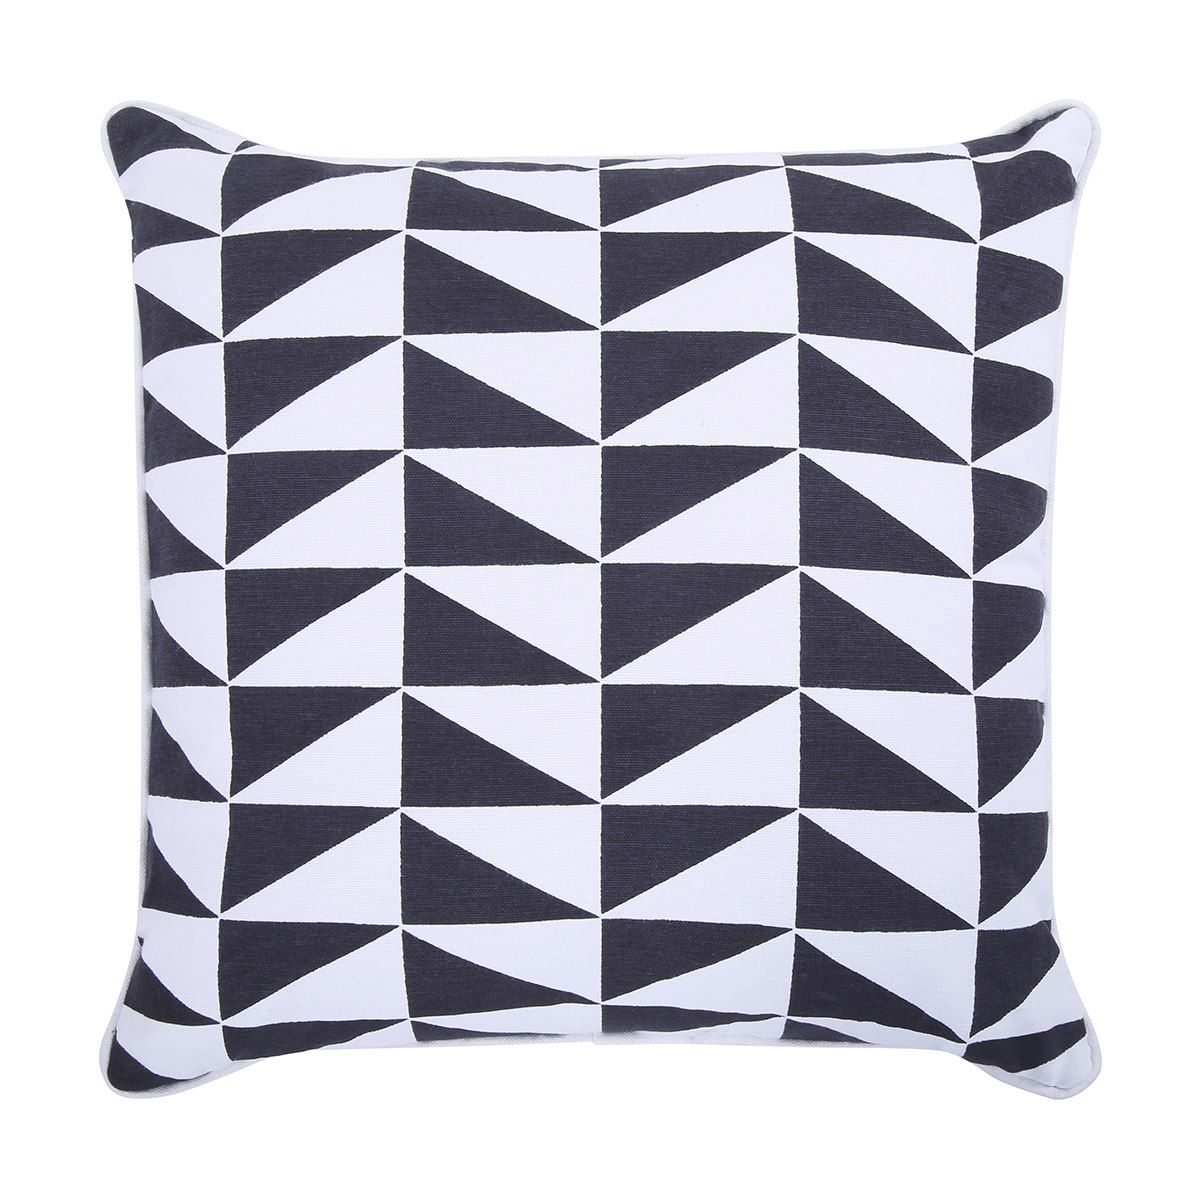 Casper Cushion Kmart (With images) Cushions, Outdoor